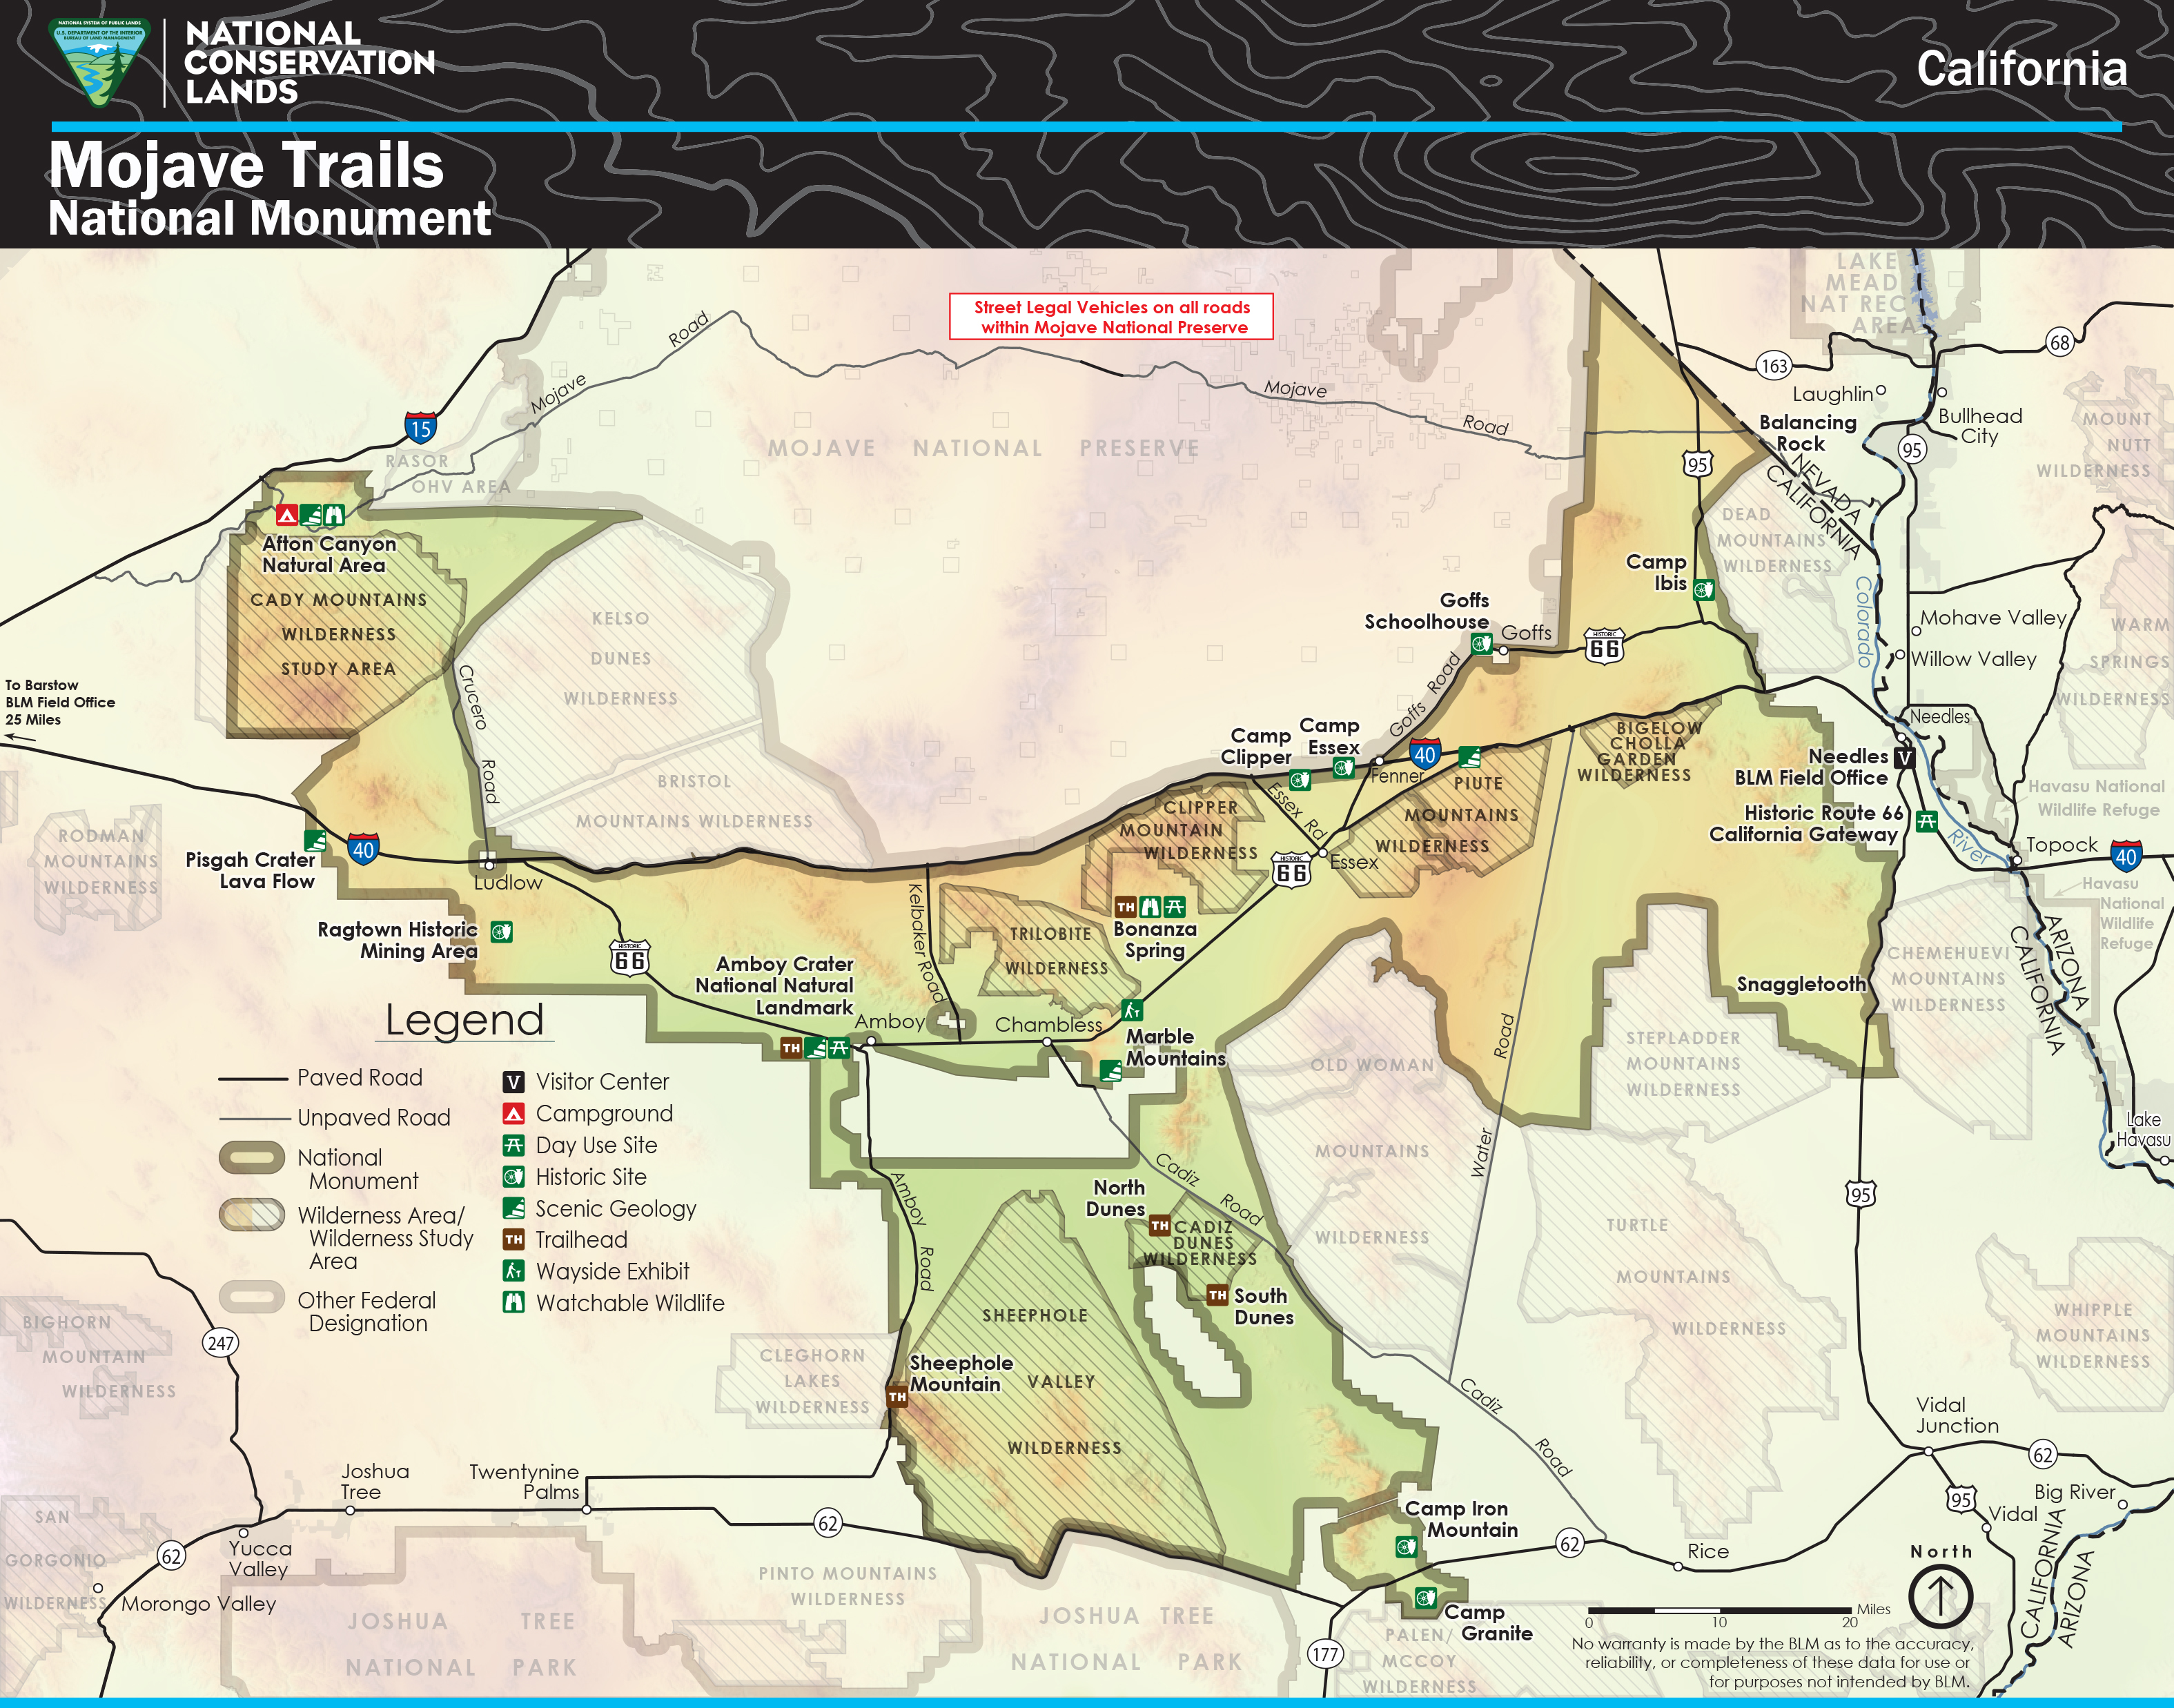 The Mojave Trails National Monument spans 1.6 million acres of federal lands.